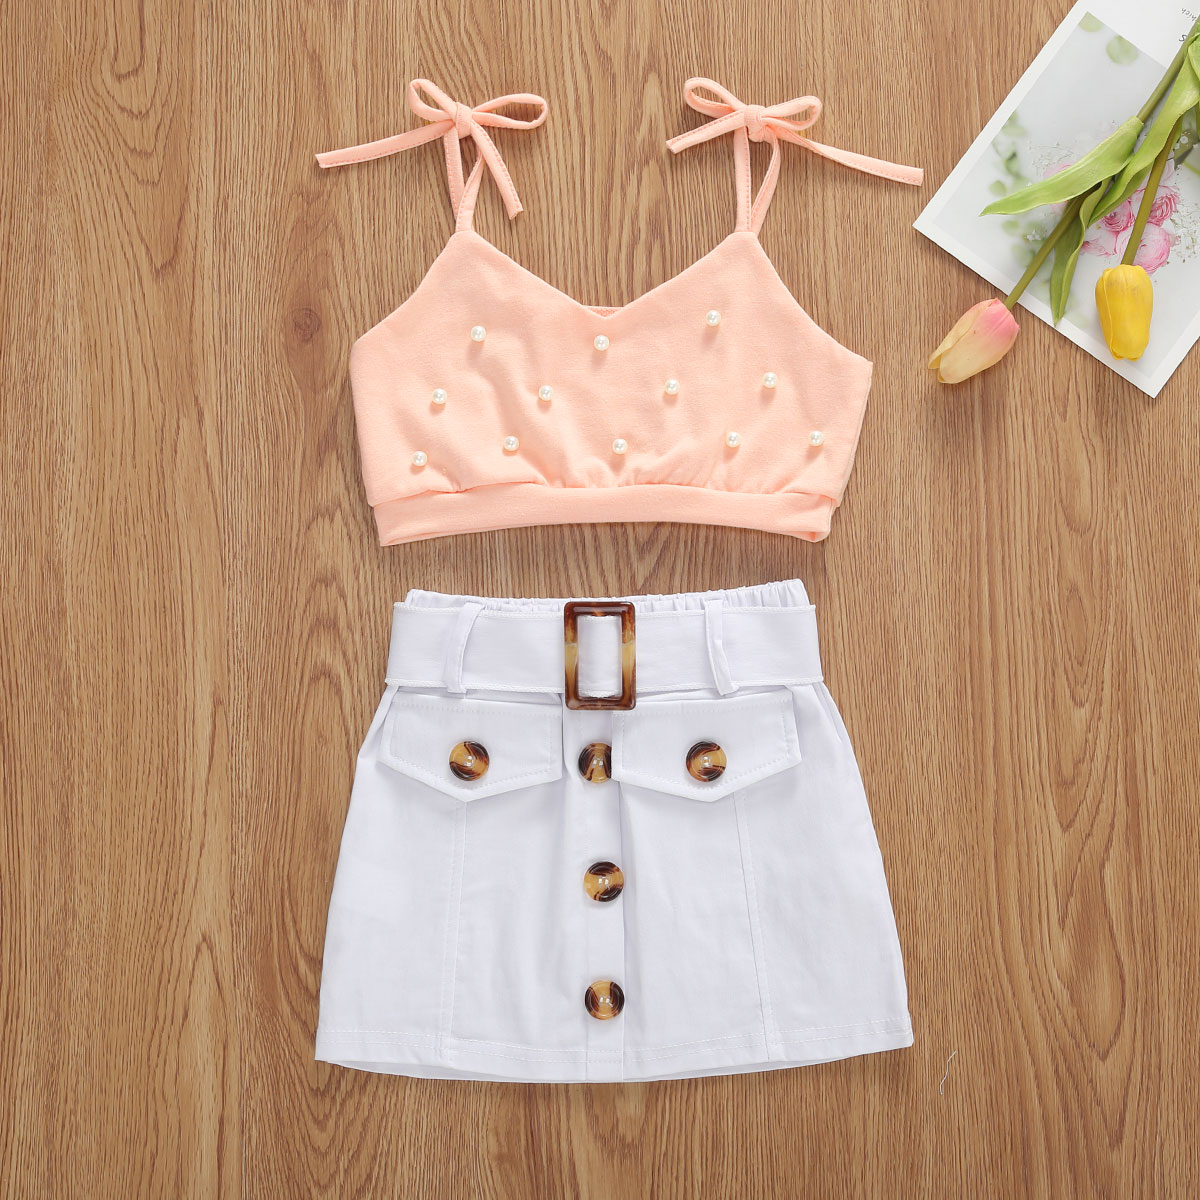 Baby Cute Girl Denim Outfit Buttons Ruffle Crop Top+Ruched Shorts 2Pcs Clothes Set